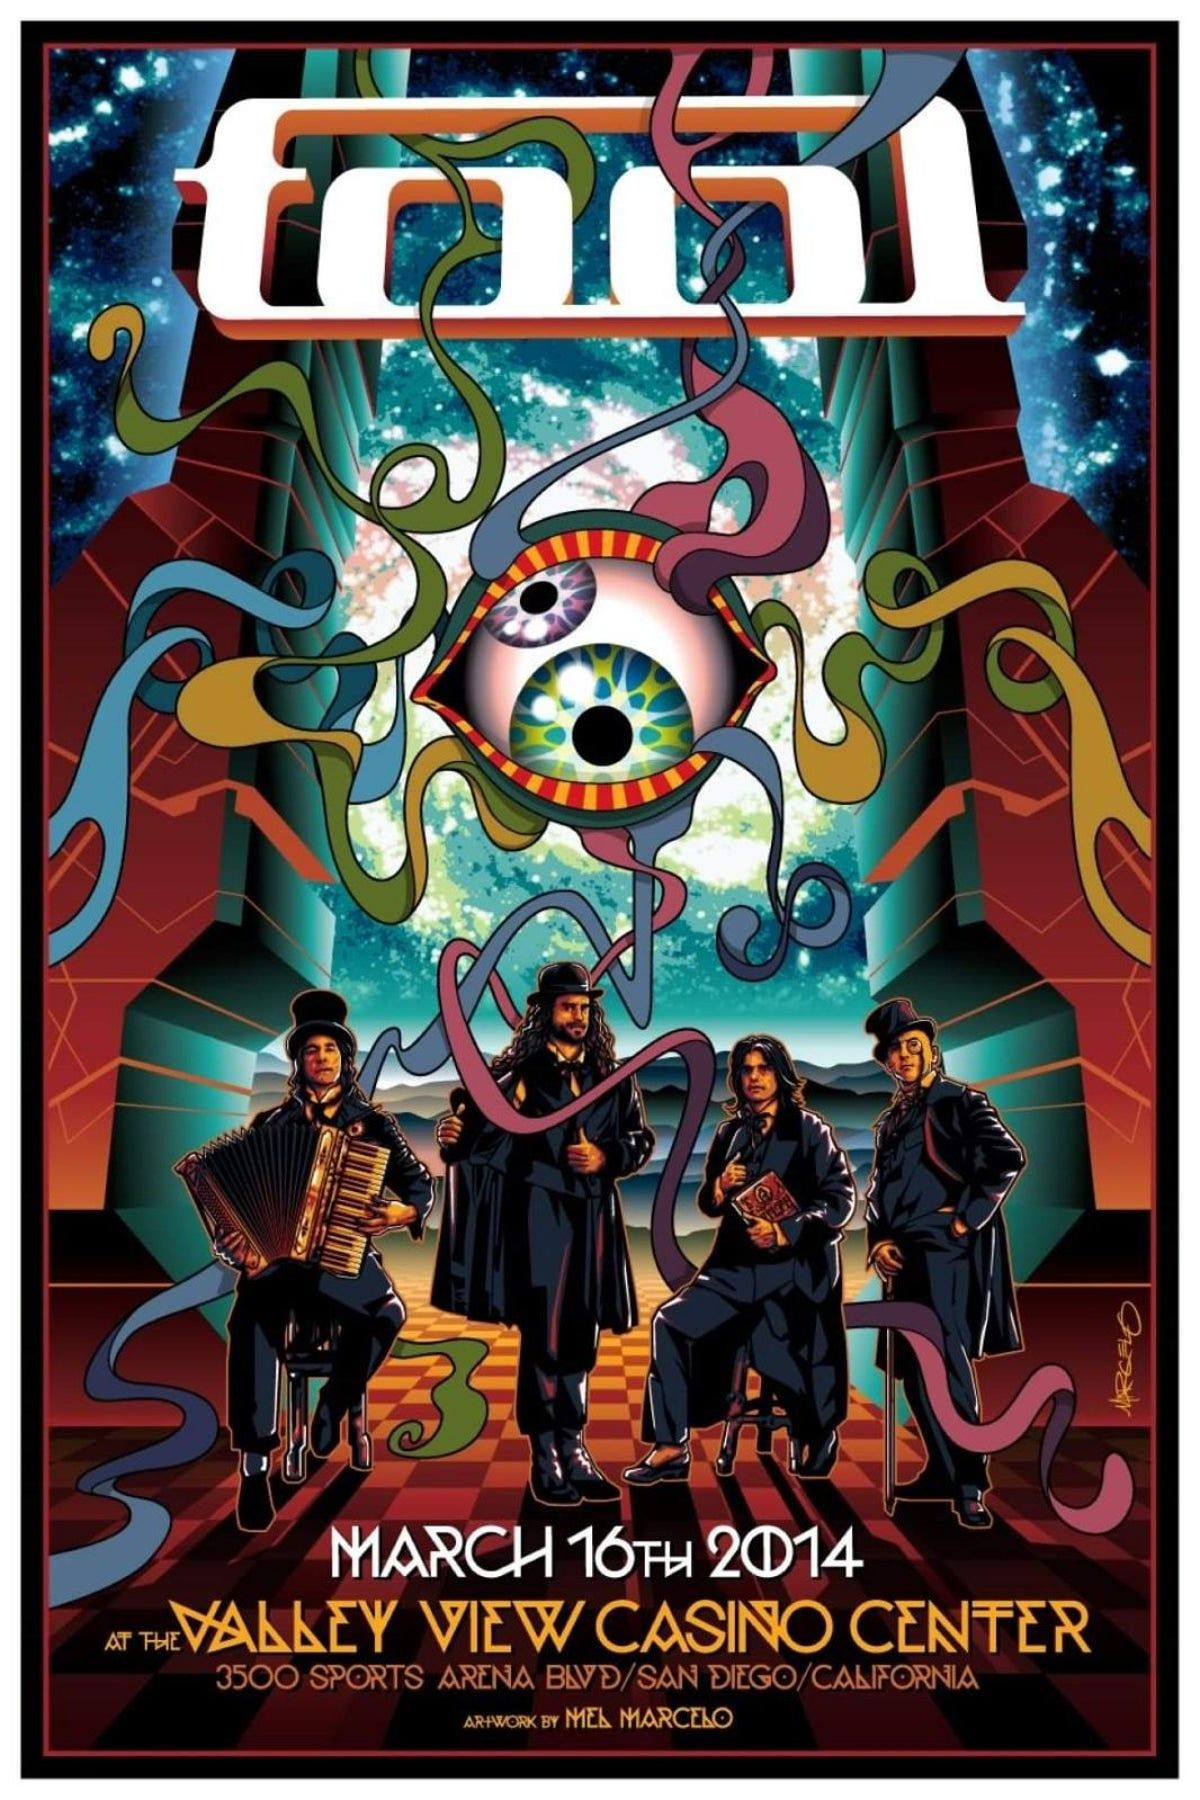 Tool Poster 13 By 19 In 2020 Tool Artwork Concert Posters Tool Music